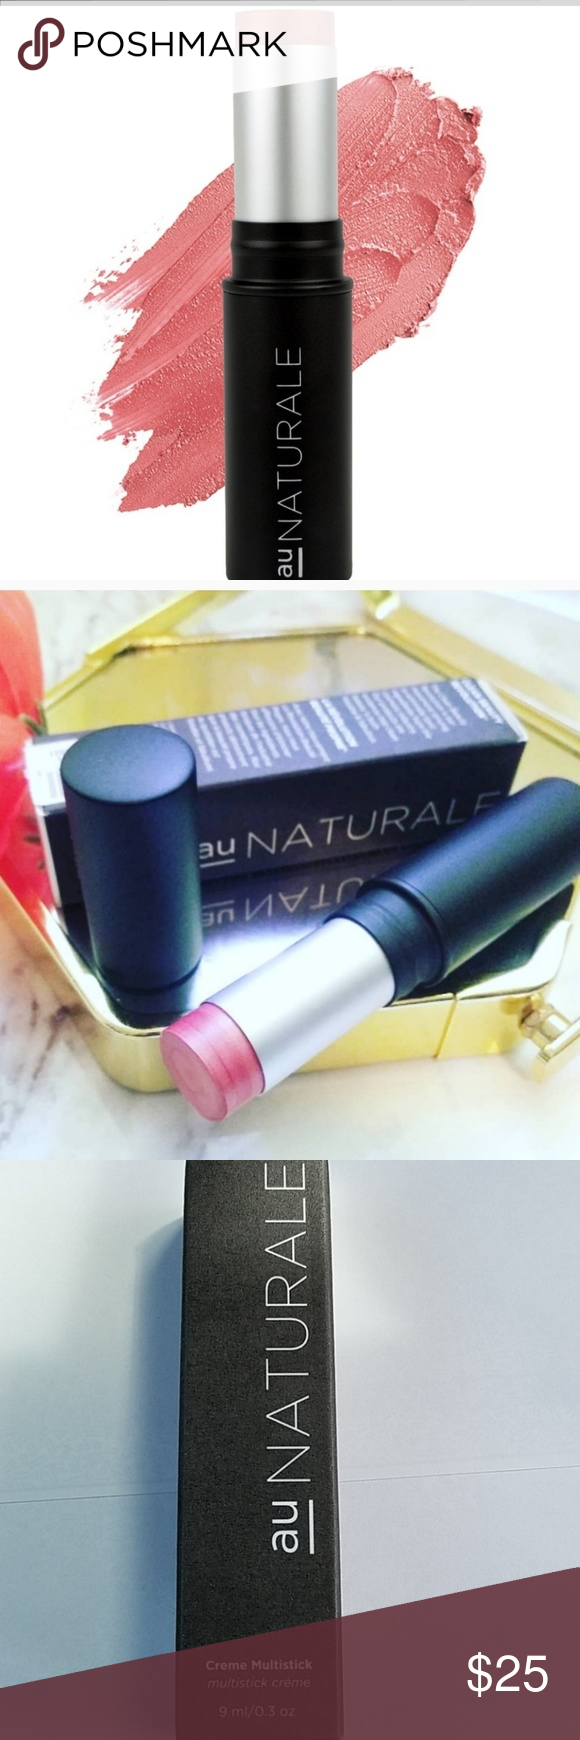 au Naturale Multistick Cream NWT Blush makeup, Things to